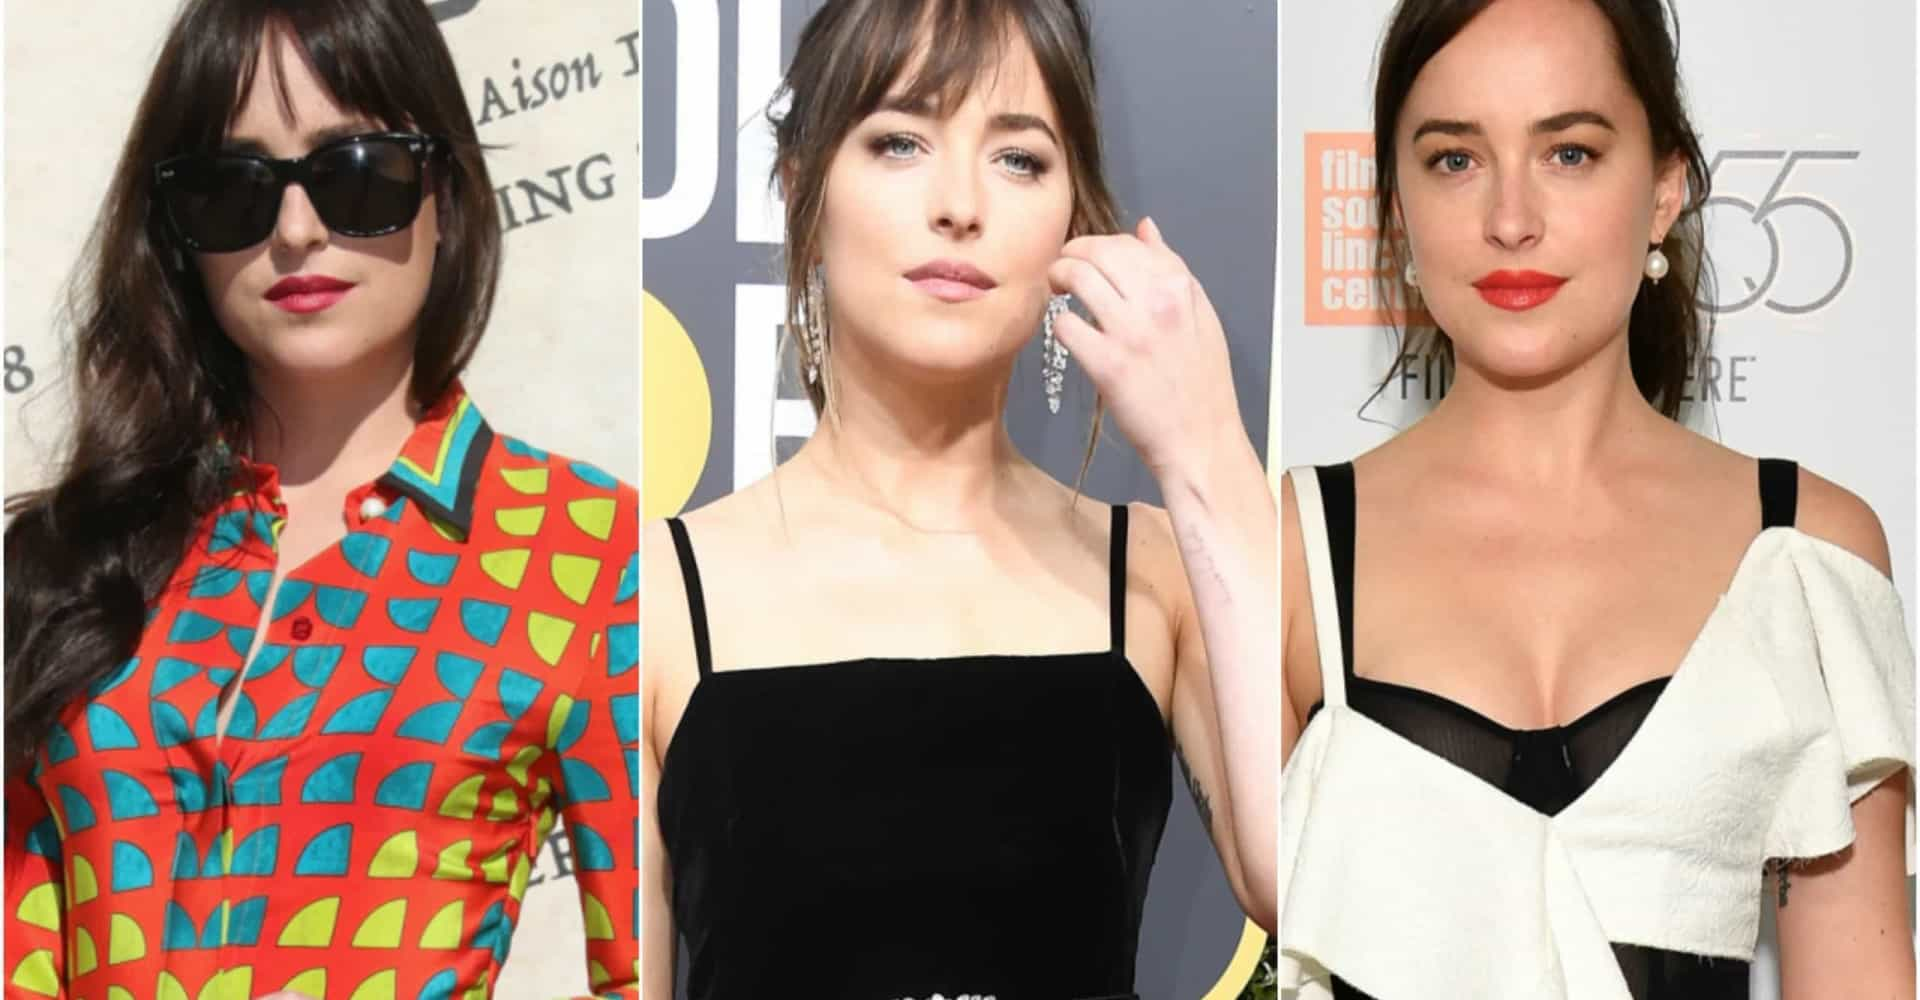 Dakota Johnson turns 30: Red carpet fashion hits and misses